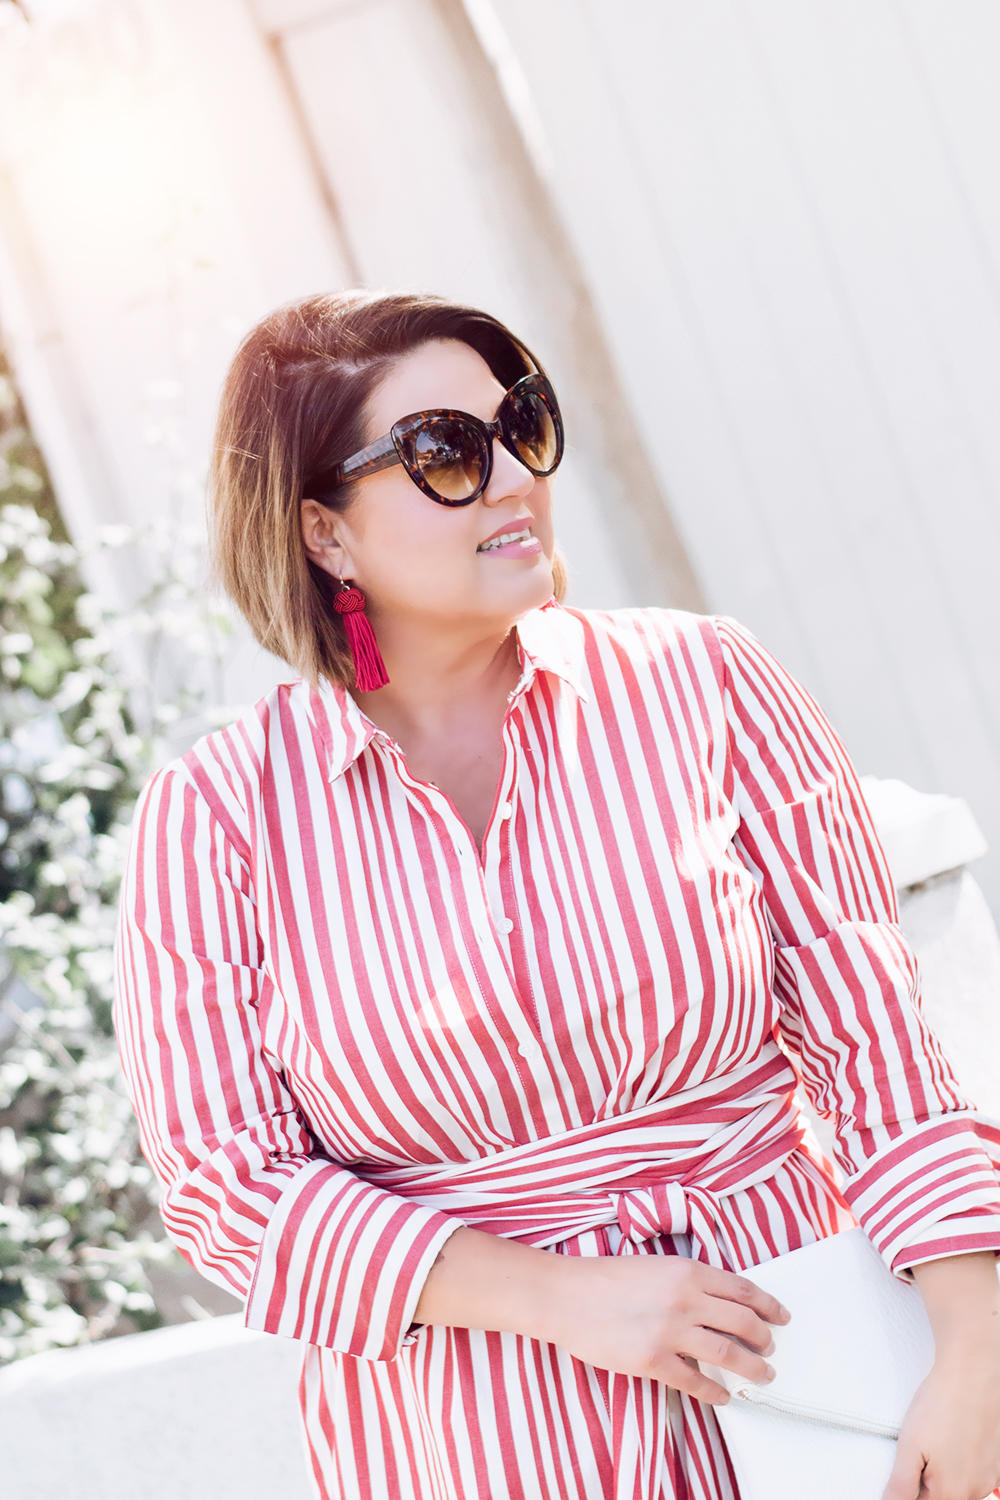 Red Stripes for Summer Striped Red Dress Who What Wear Street Style Looks to Copy in 2018 Barefoot in LA Fashion Blog Style Ideas Outfits0198